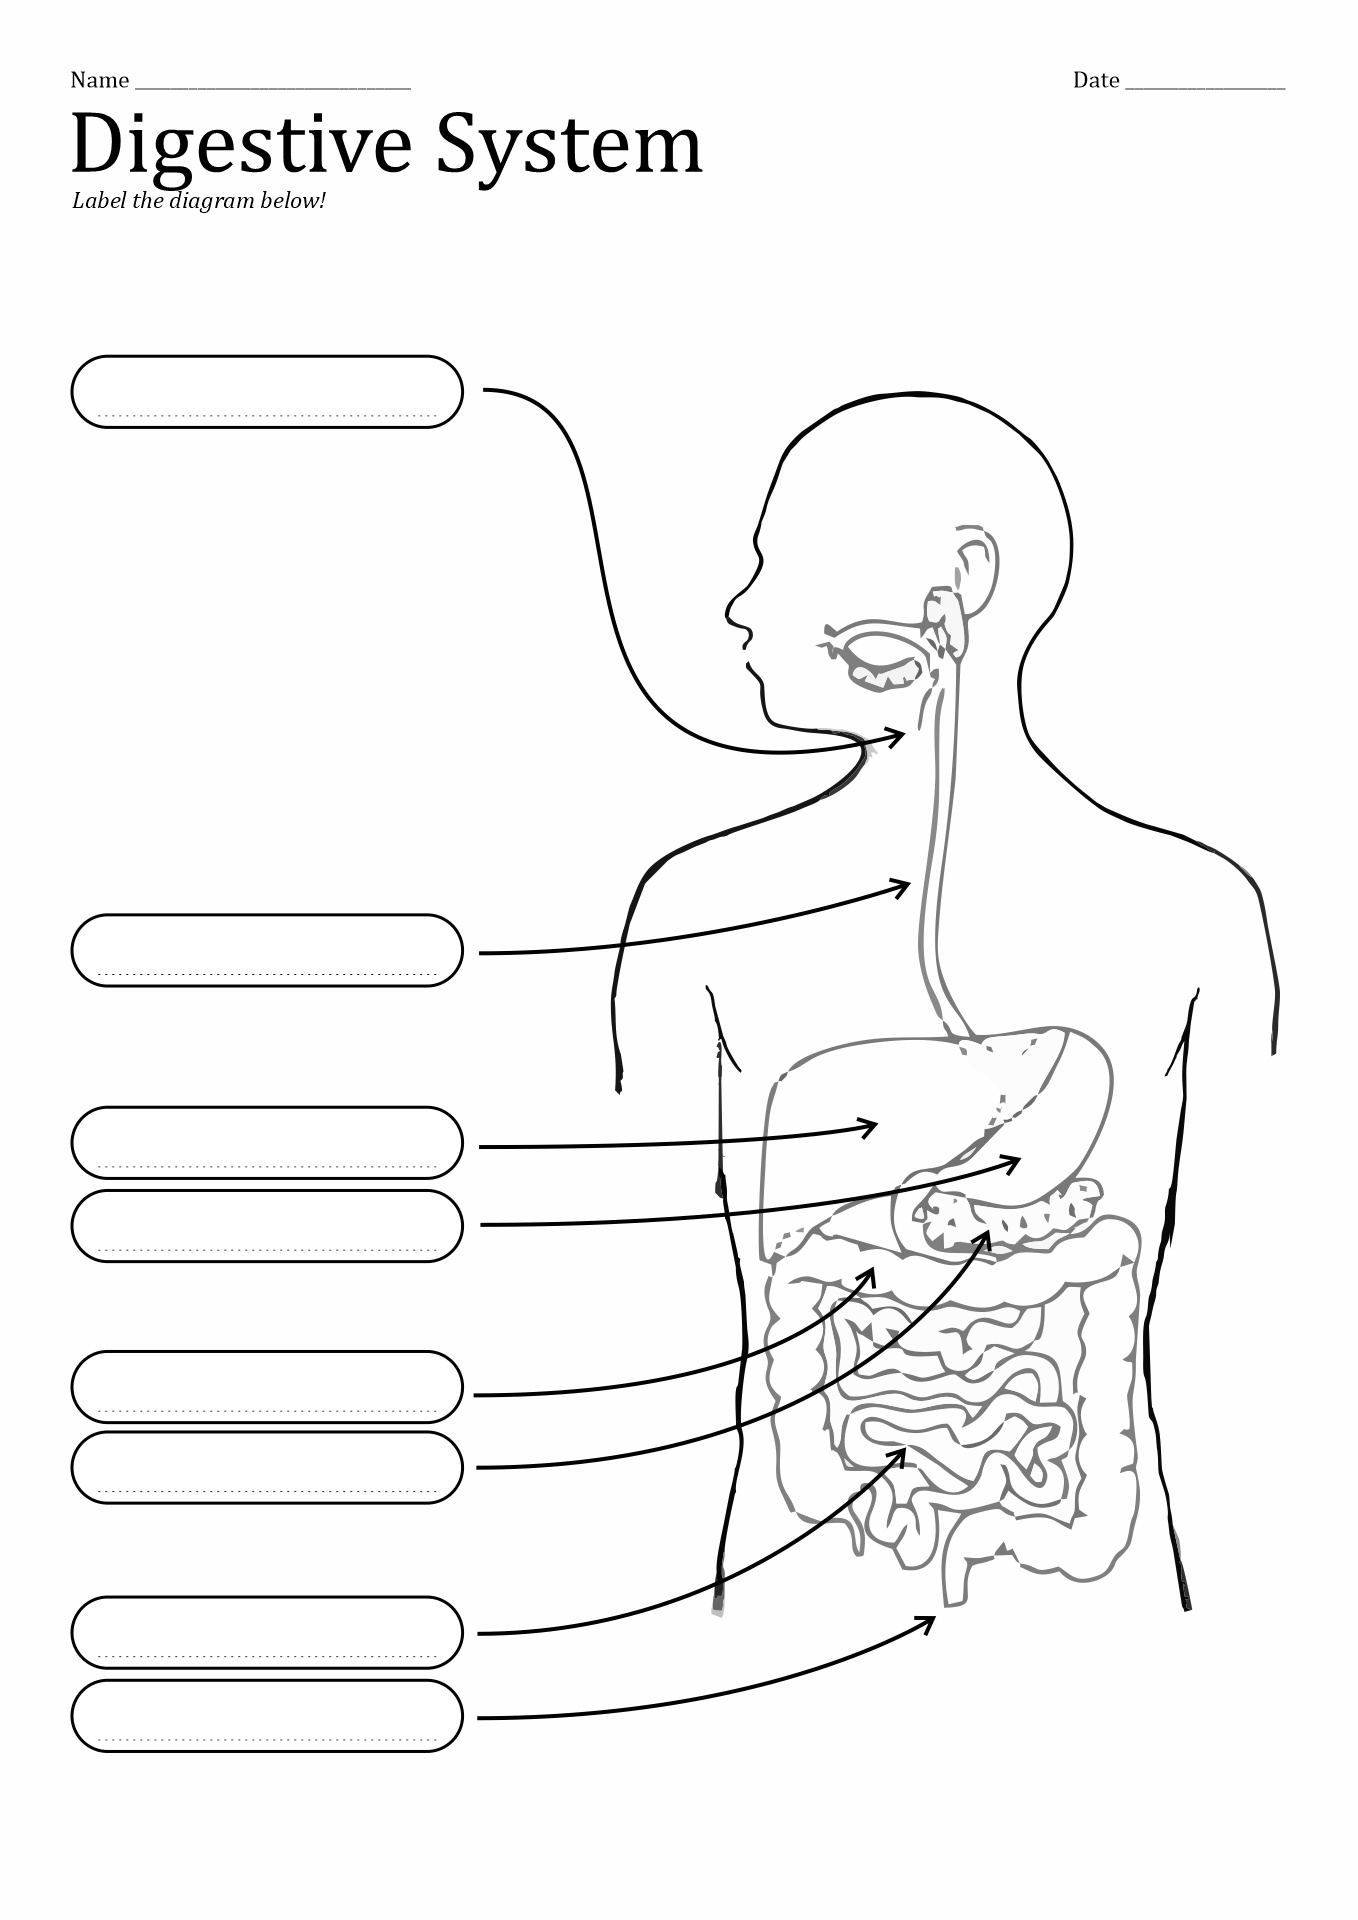 large intestine anatomy diagram labeled wiring for two switches to one light 10 best images of unlabeled digestive system